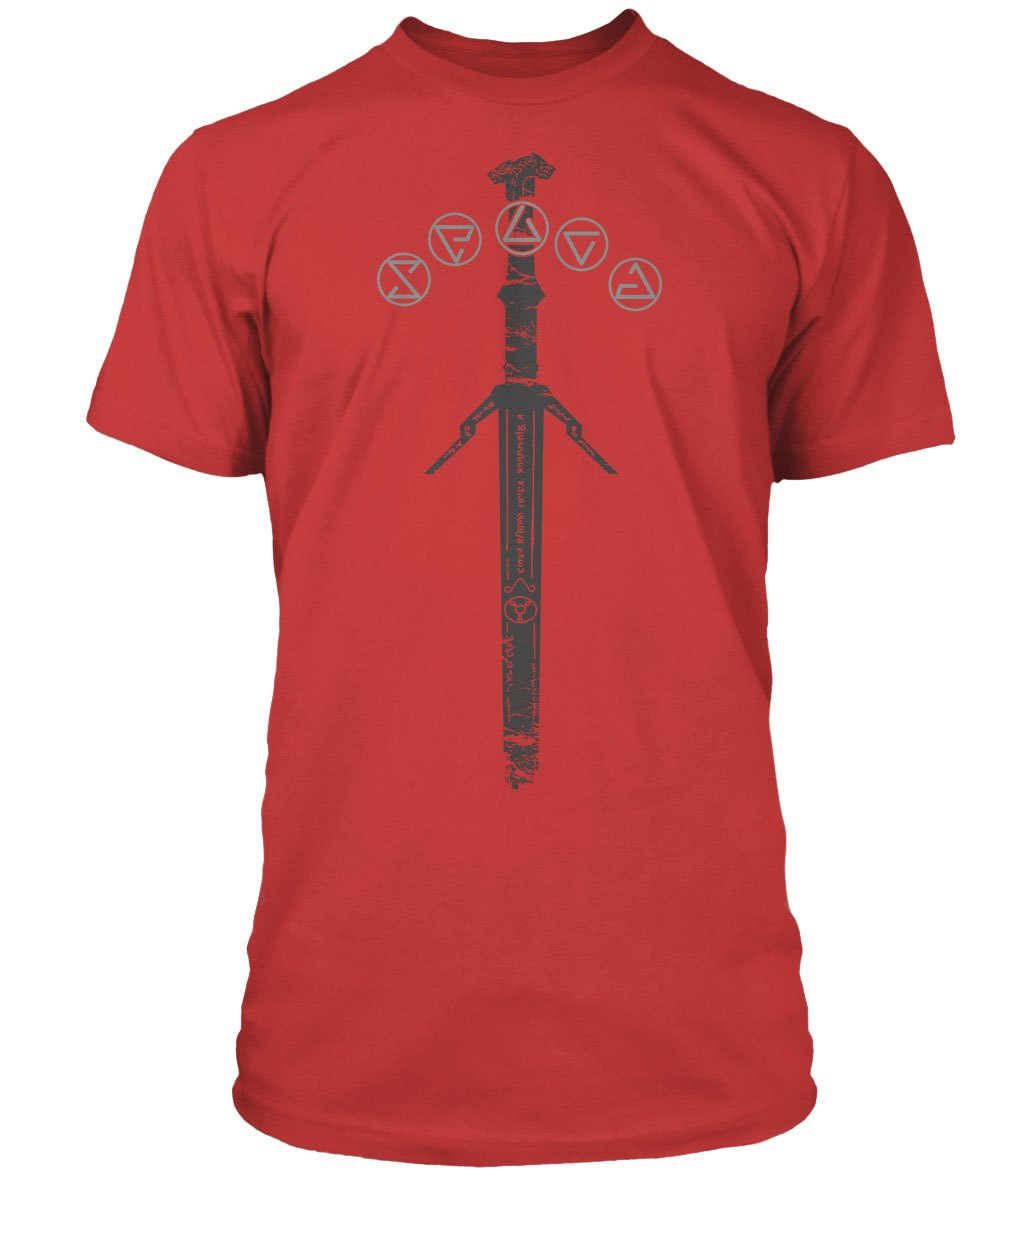 The Witcher T-Shirt Silver Sword Size S